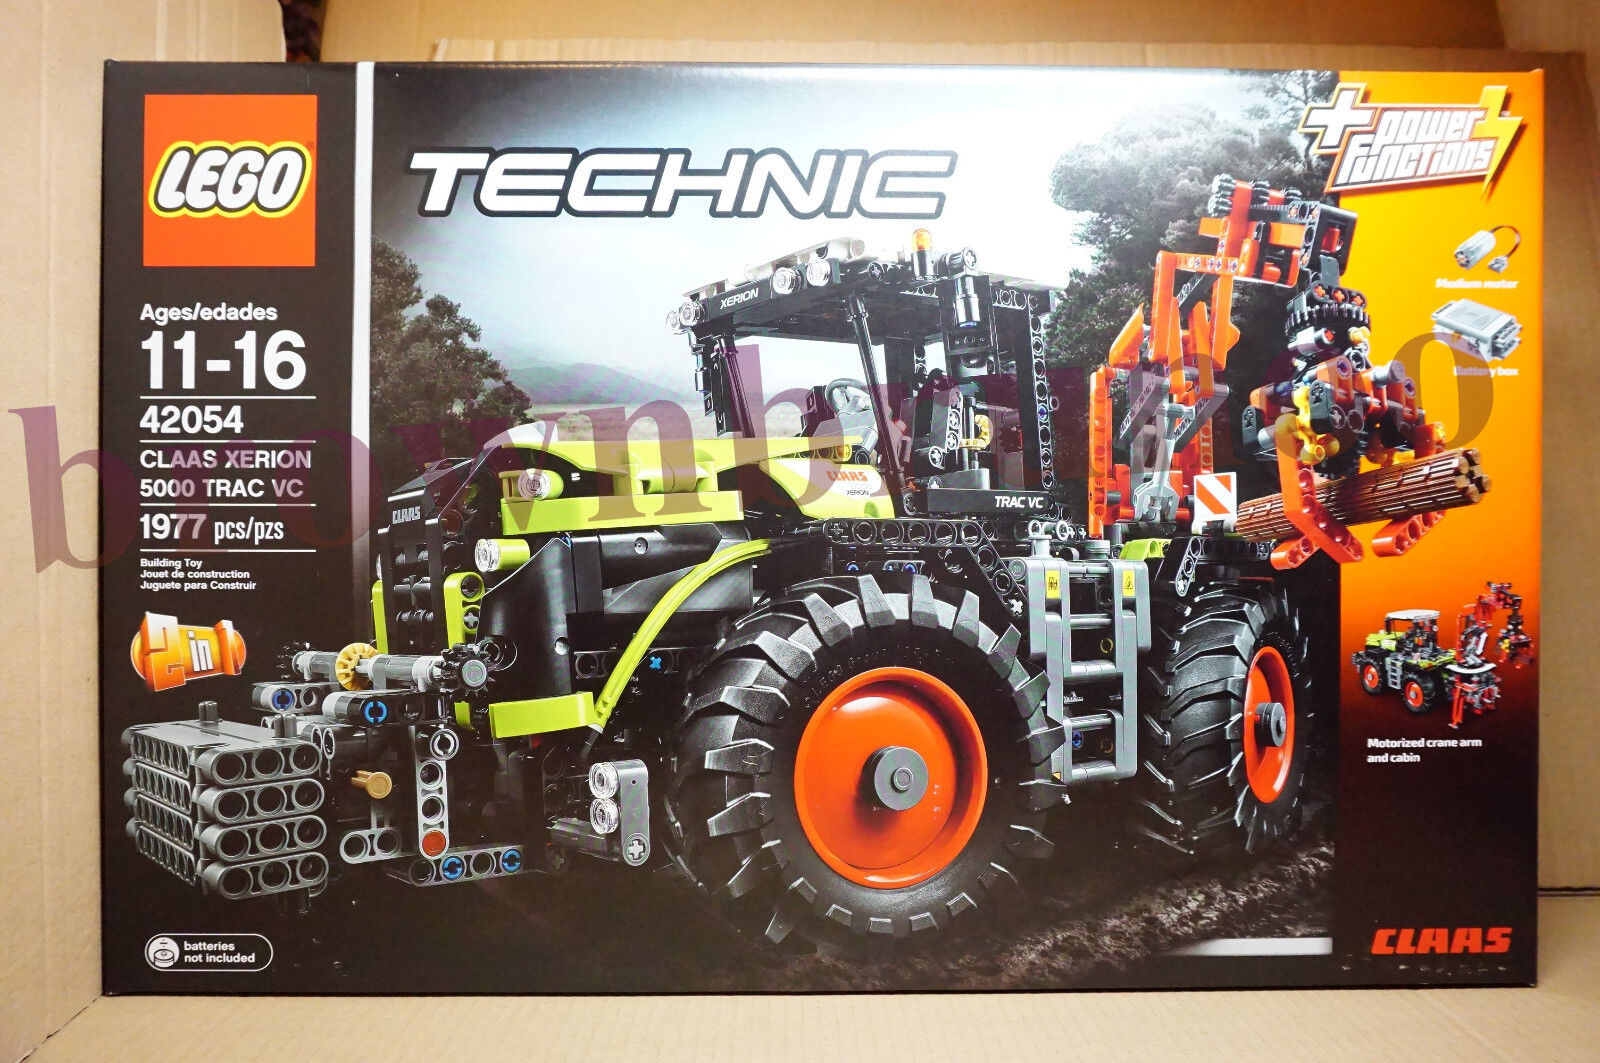 Lego Technic 42054 Claas Xerion 5000 Trac Vc Kit di Costruzione Power Functions